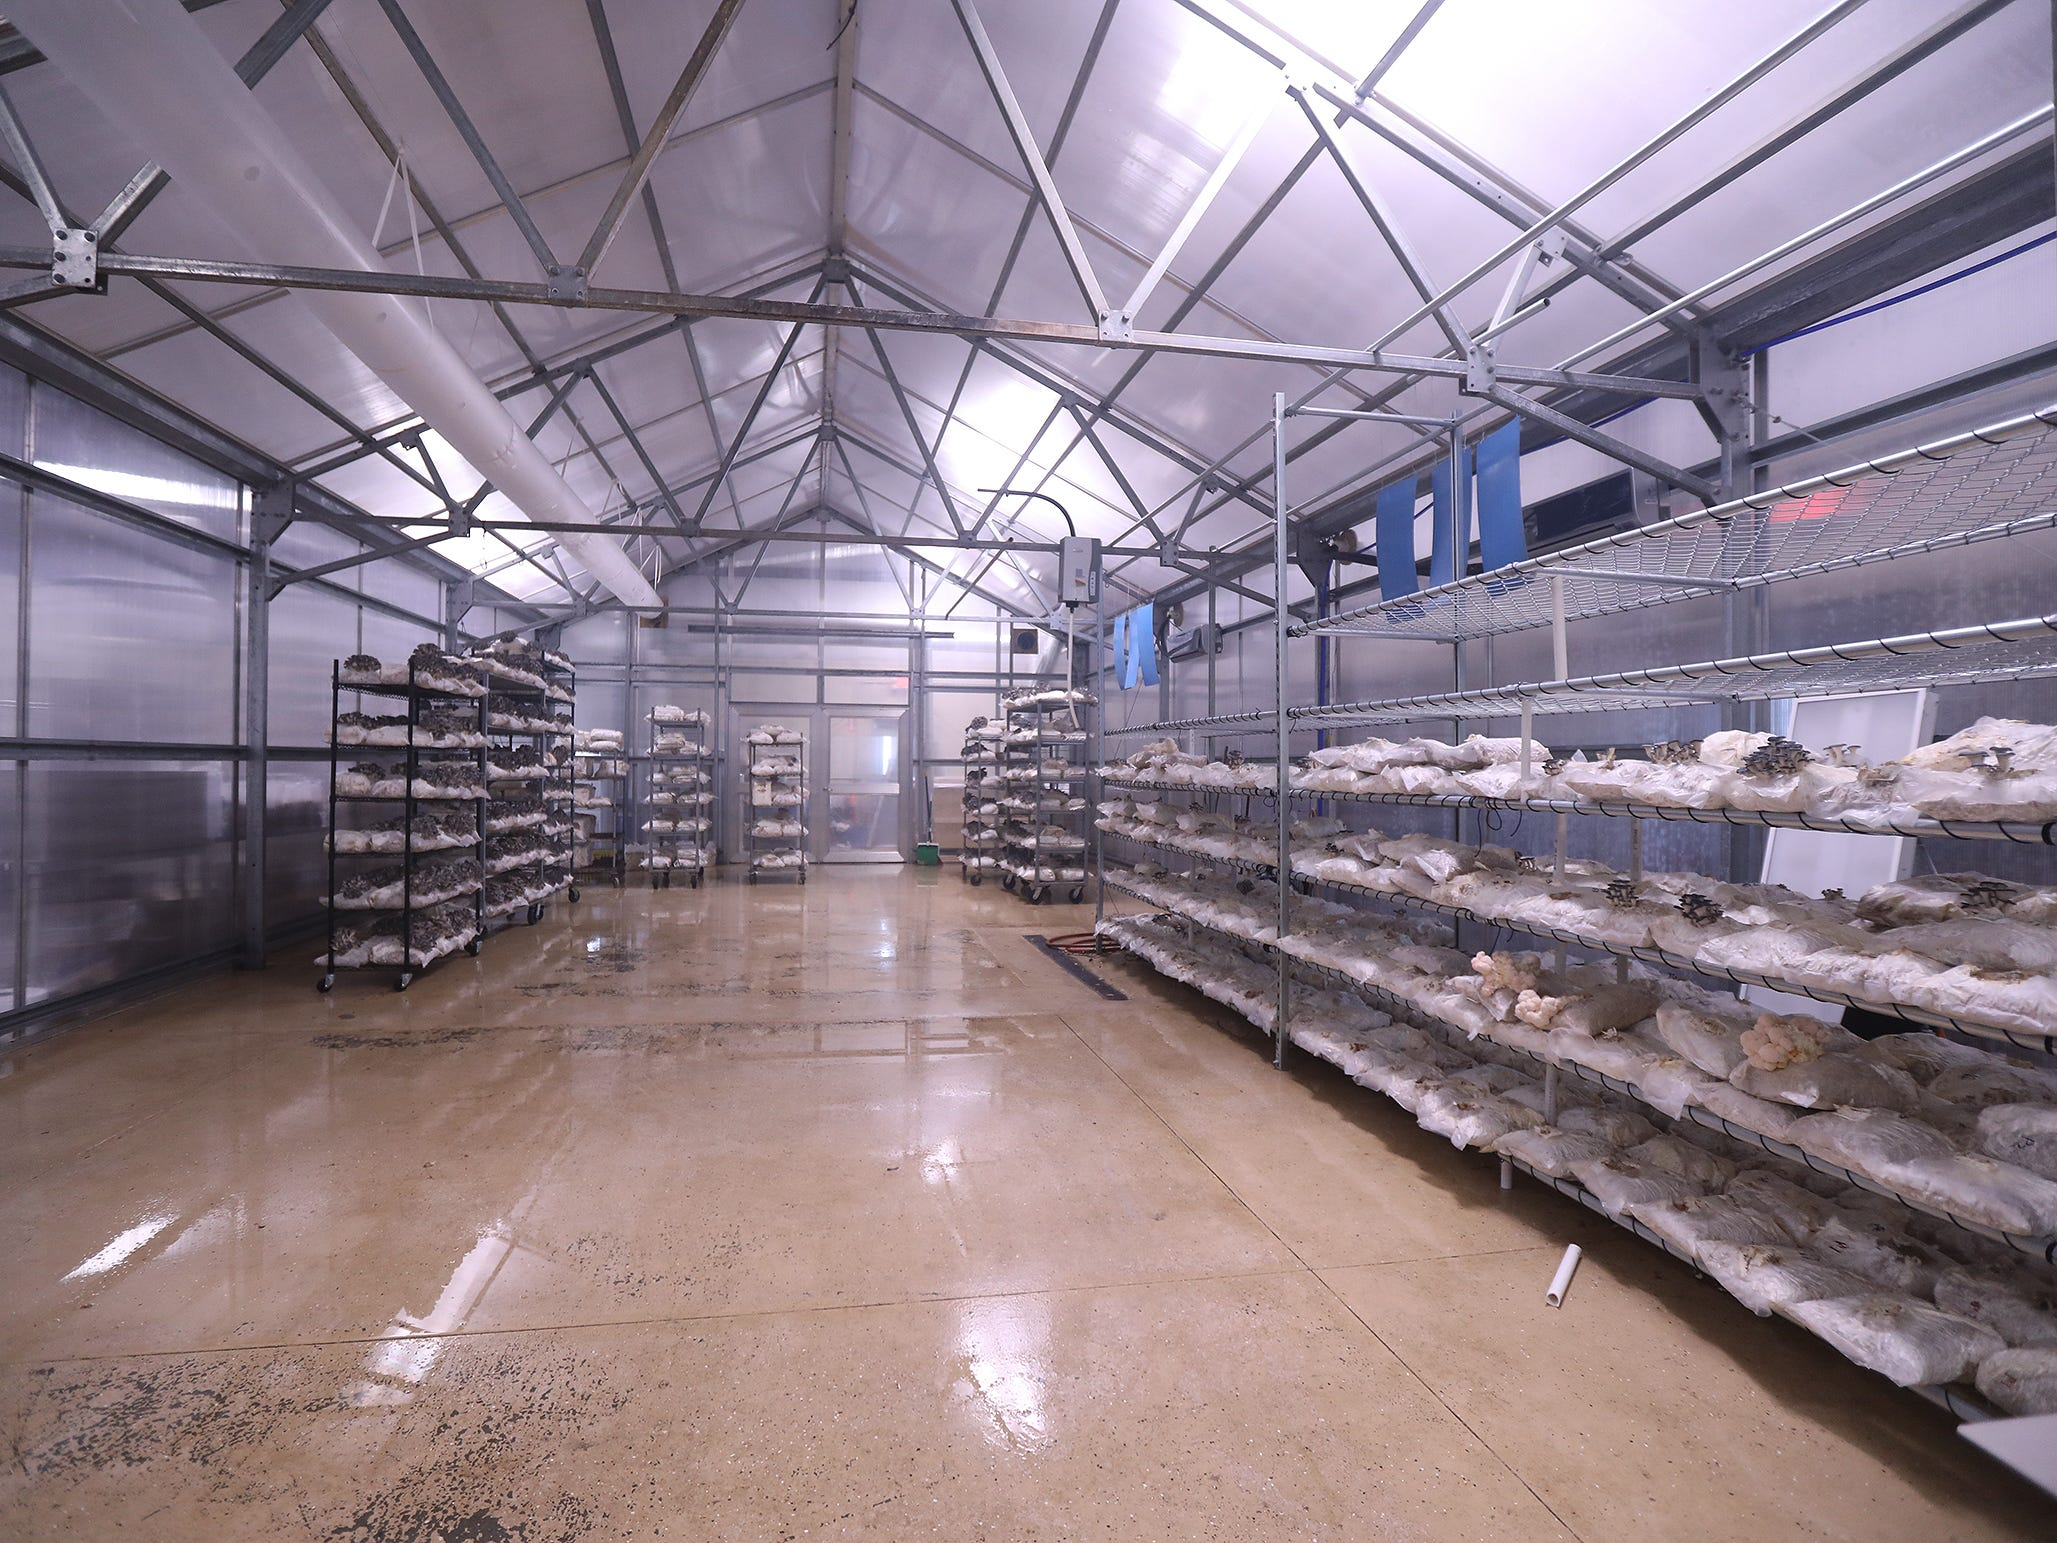 Mushrooms at Leep Foods end up in this room in their final stages of growth.